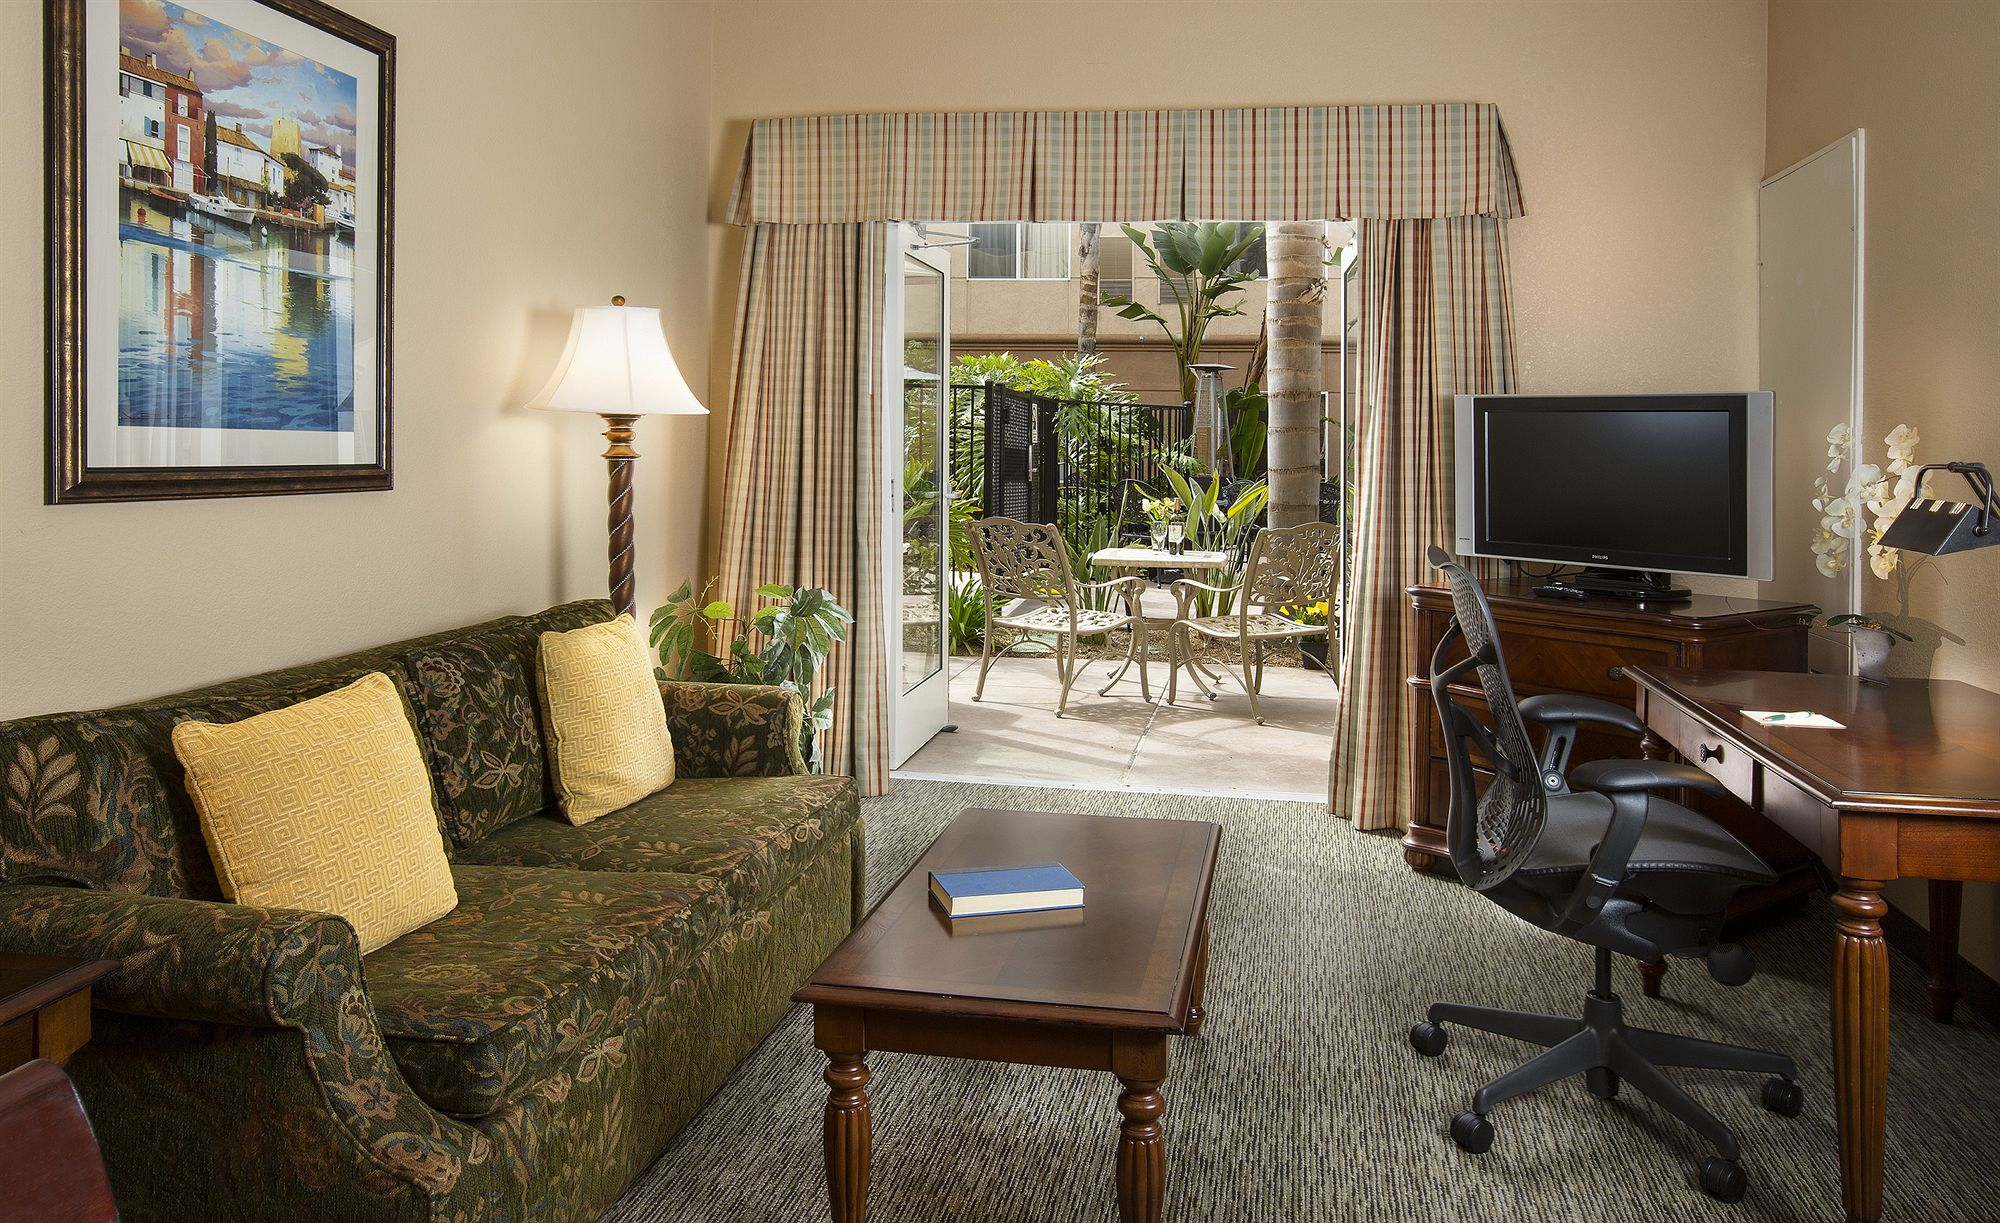 San Diego Hotel Coupons for San Diego, California - FreeHotelCoupons.com